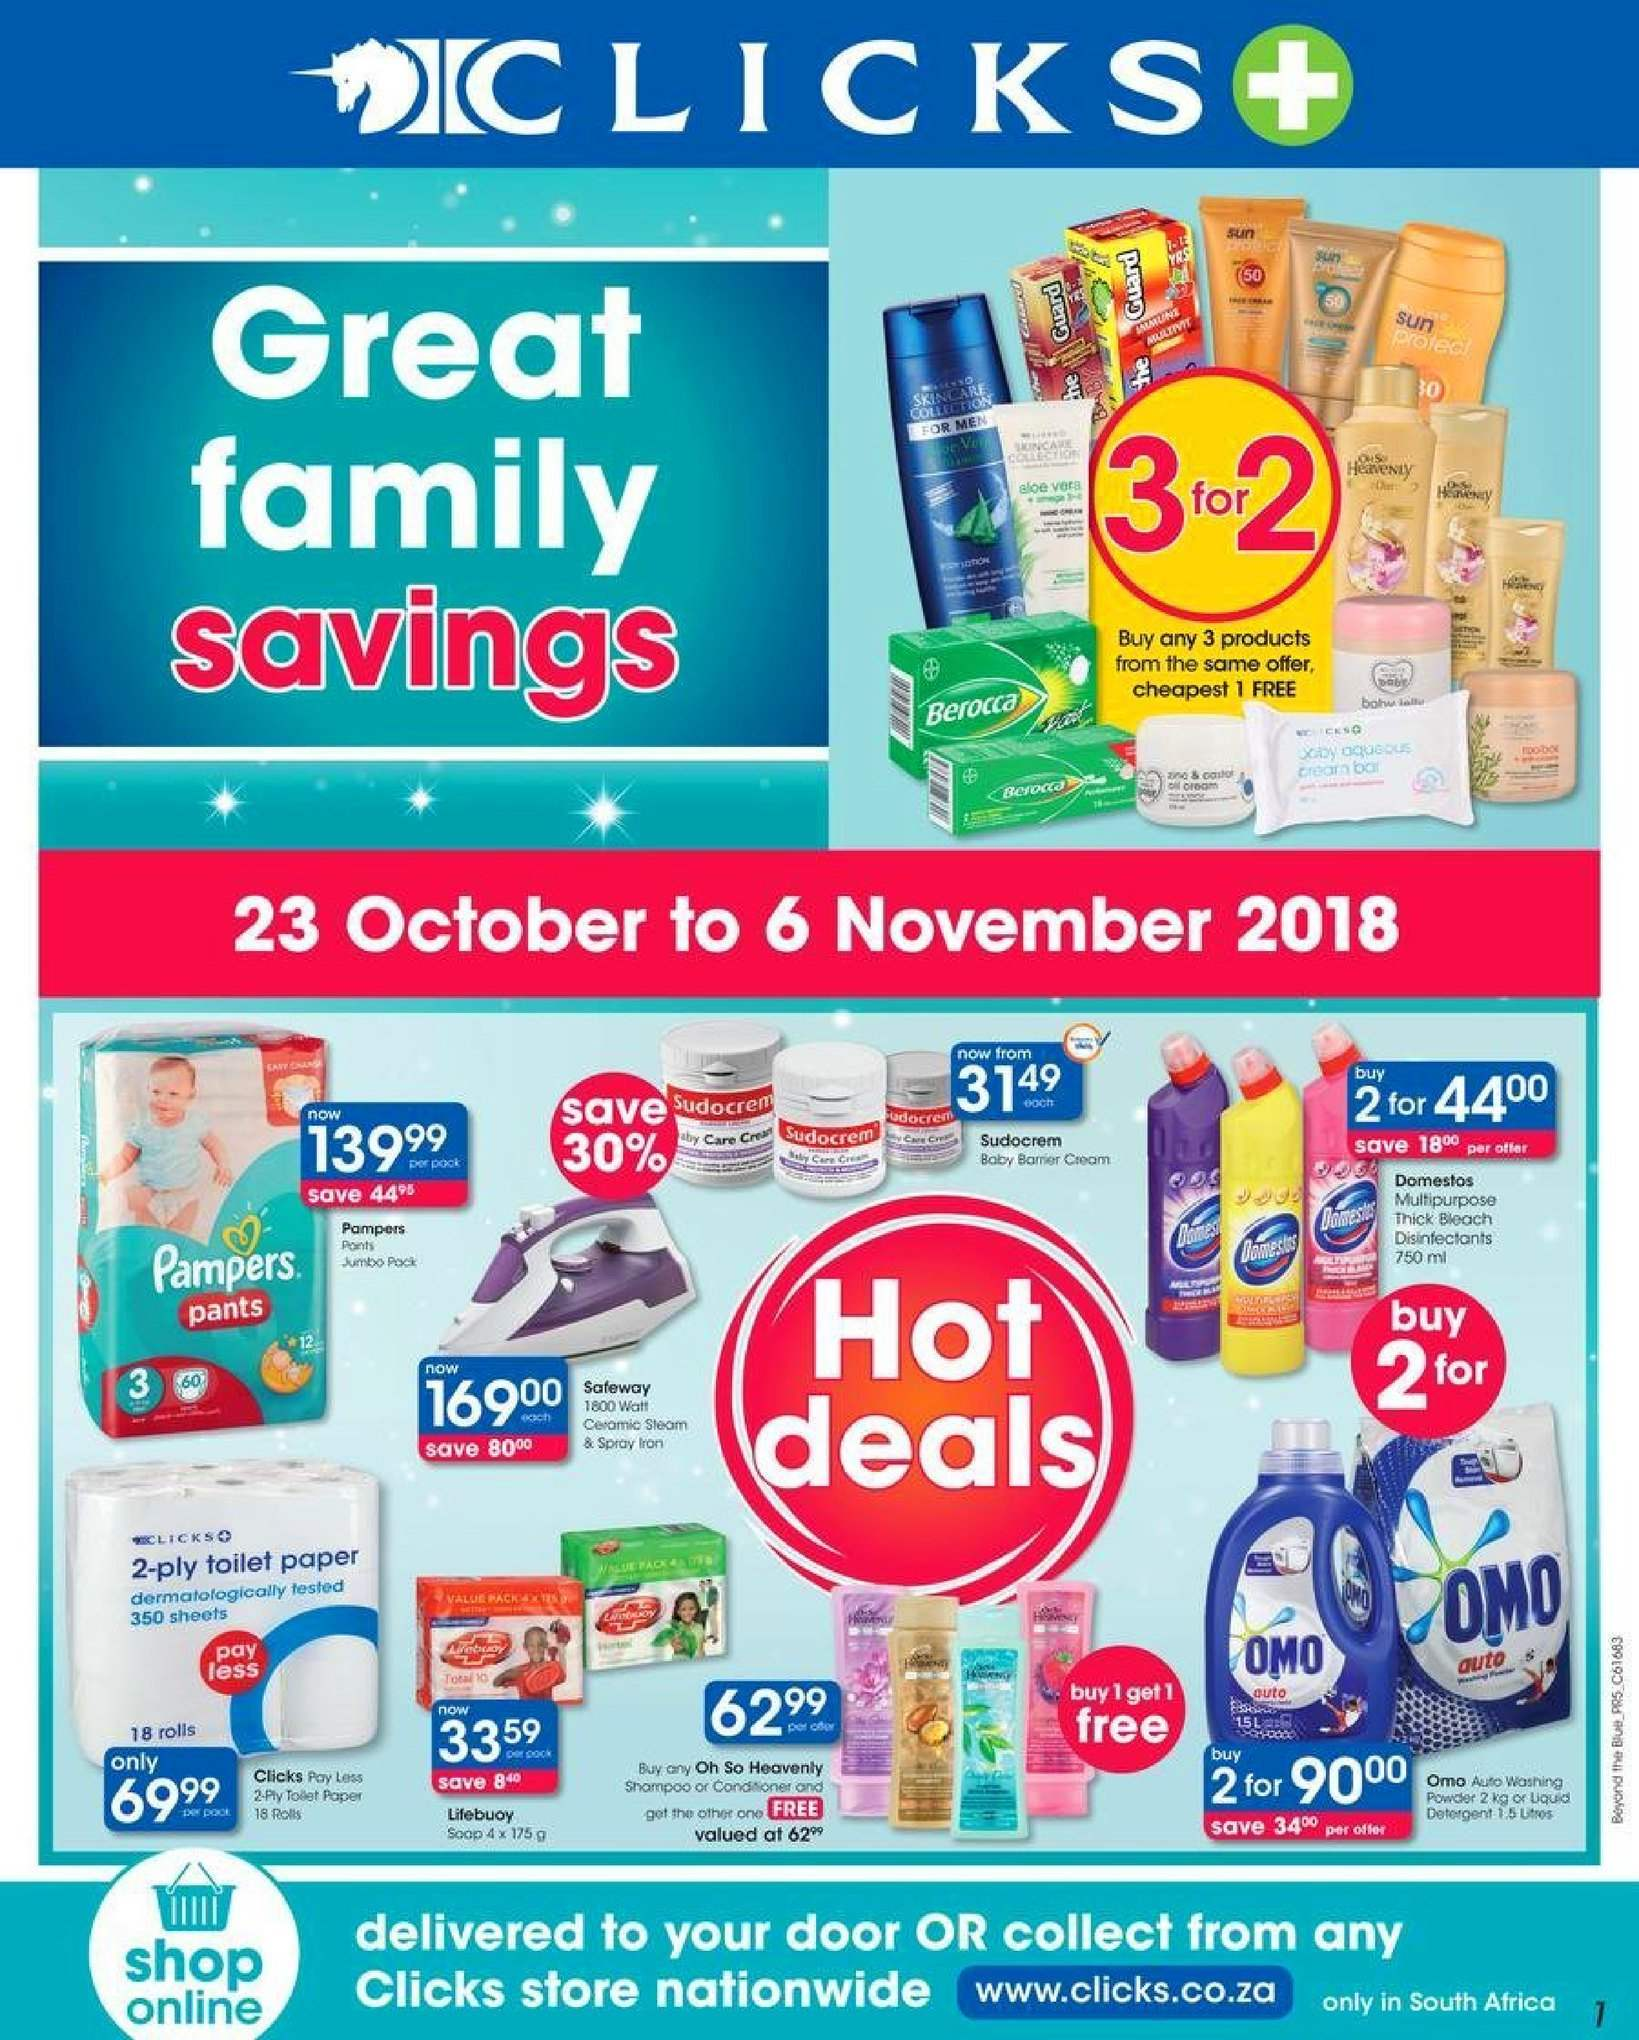 Clicks special - 10.23.2018 - 11.06.2018 - Sales products - aloe, cream, pampers, pants, toilet paper, domestos, omo, thick bleach, rolls, bleach, toilet. Page 1.